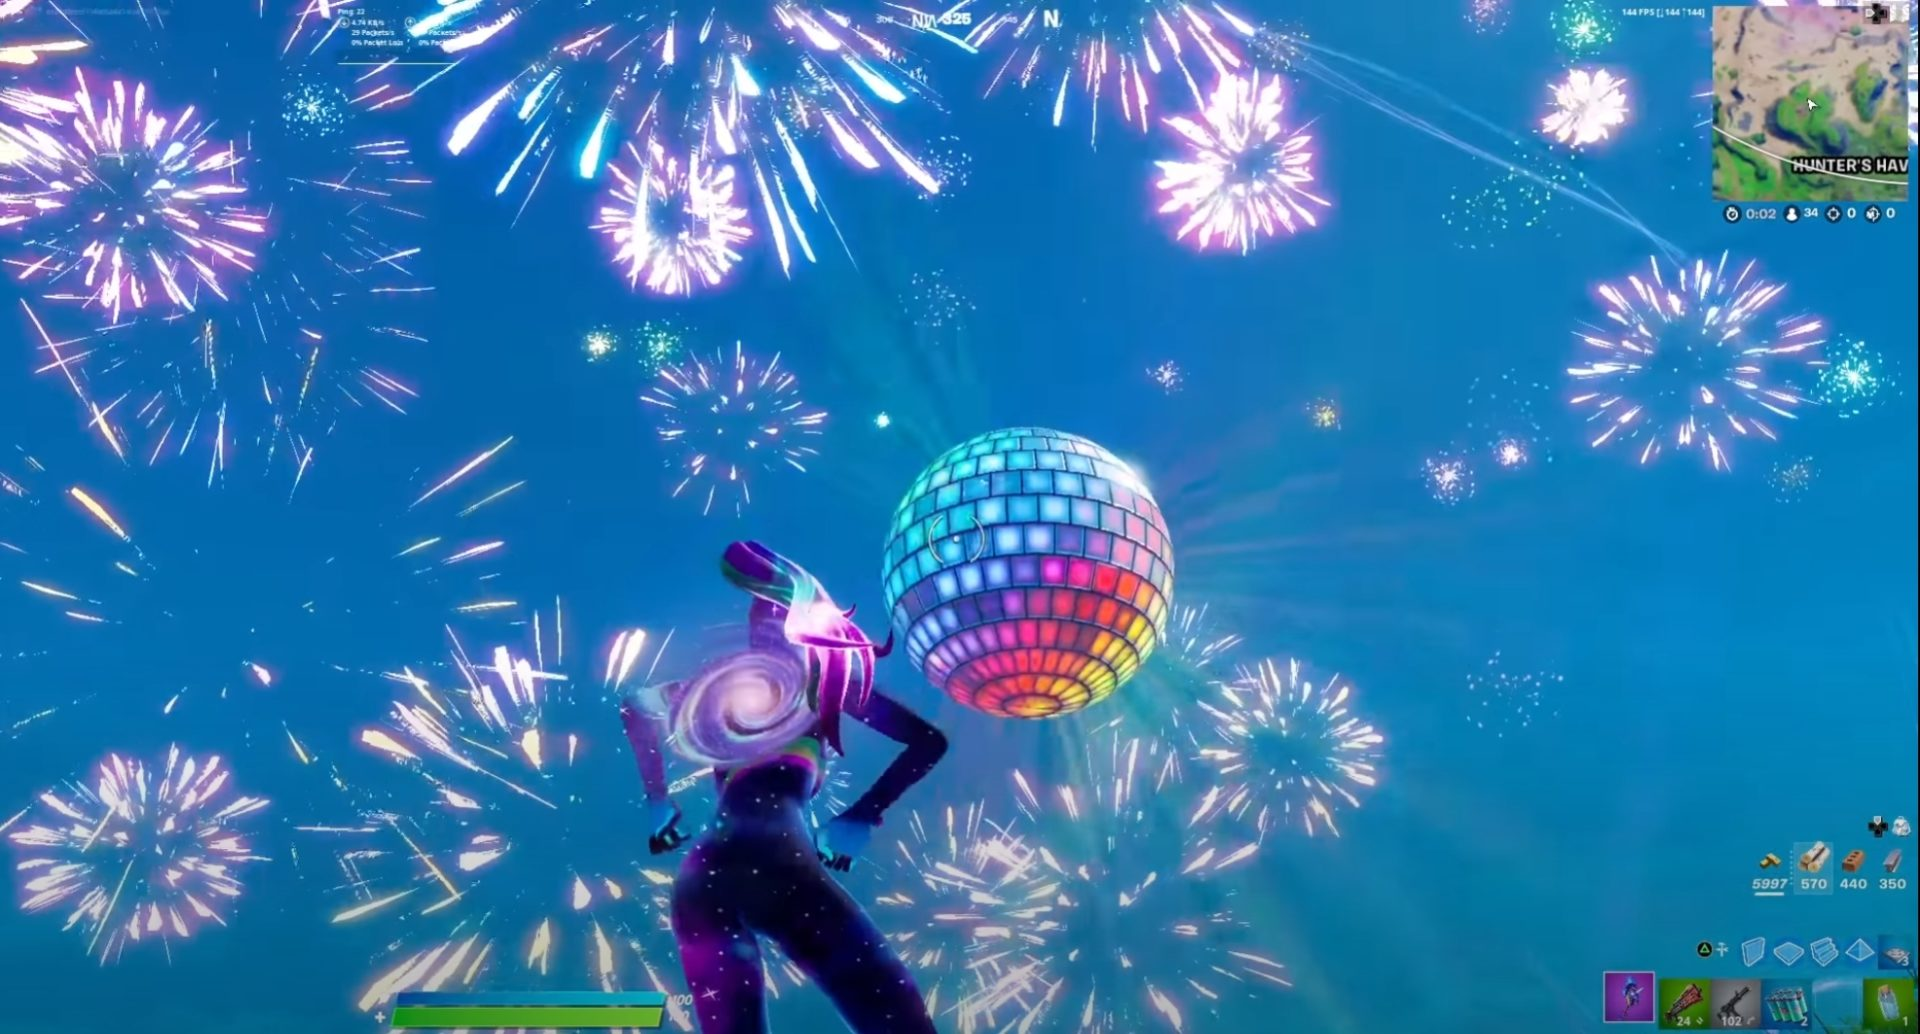 Fortnite's 2021 event with fireworks in the sky and a giant disco ball